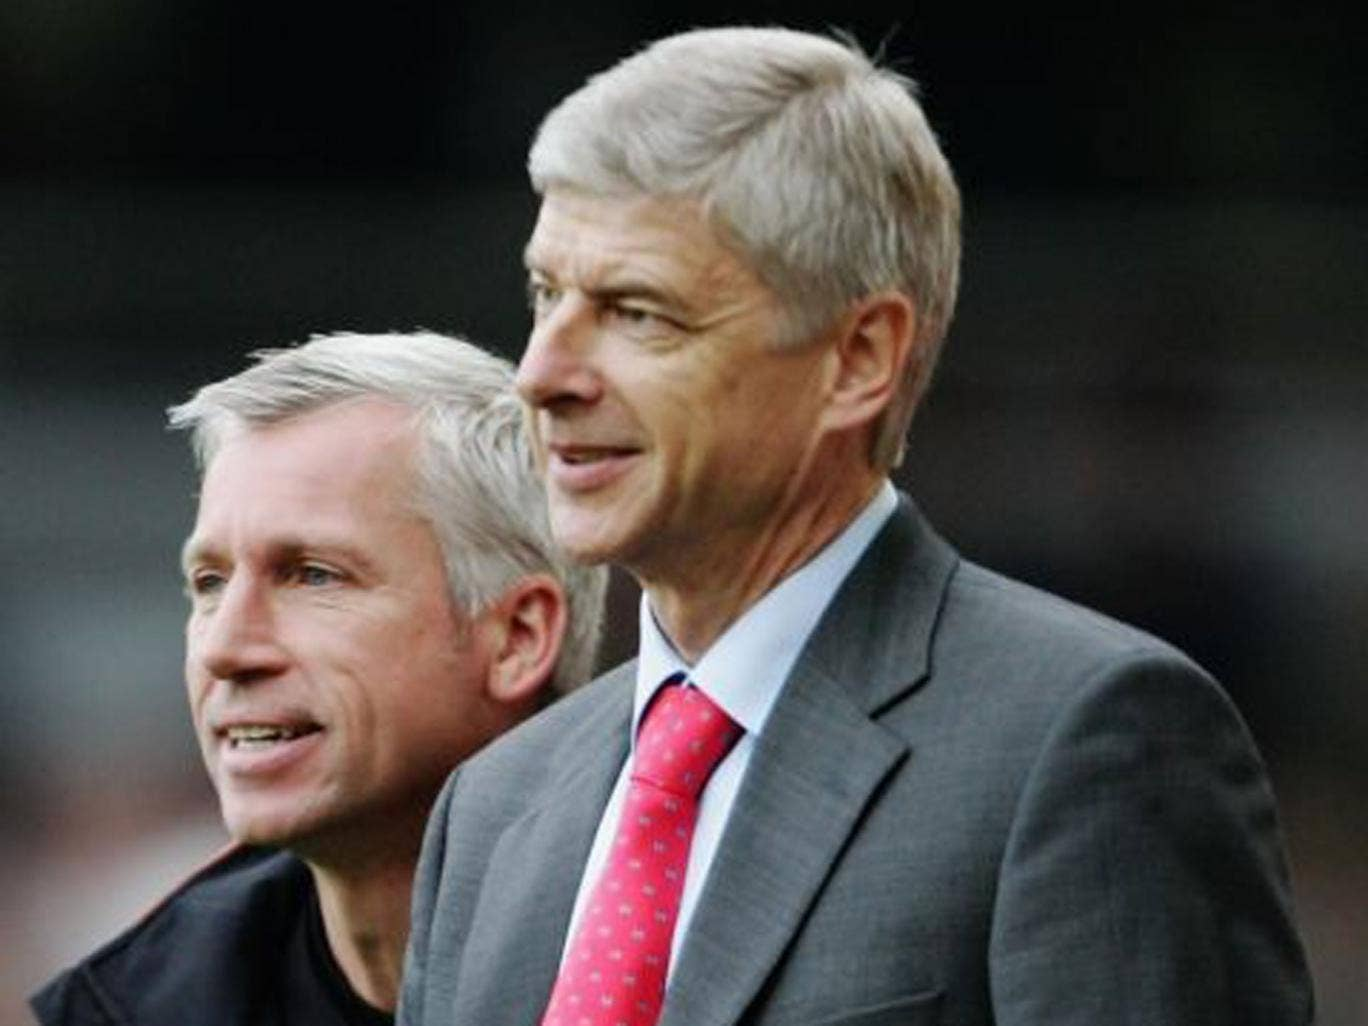 Beside themselves: Alan Pardew (left) does not see eye to eye with Arsène Wenger but says 'we owe him a bit of a debt'